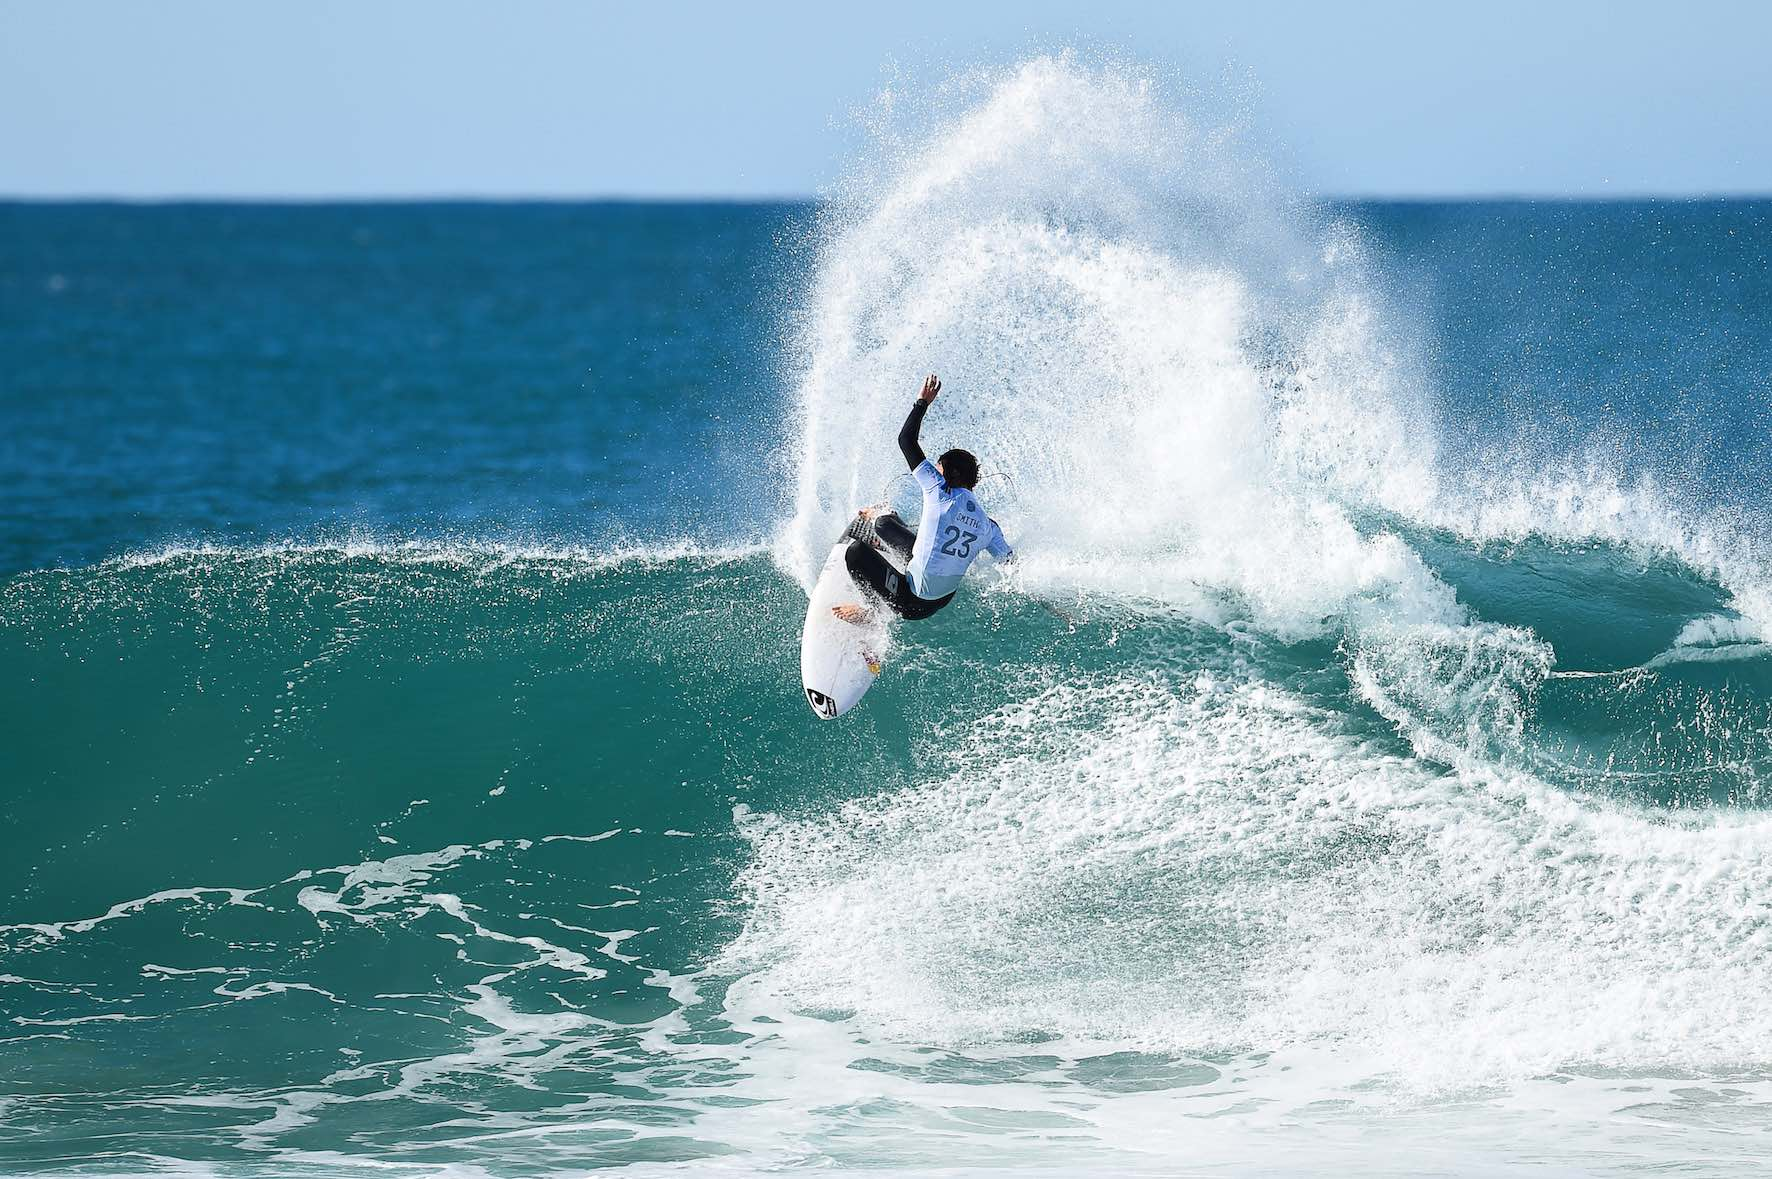 South Africa's top professional surfer, Jordy Smith